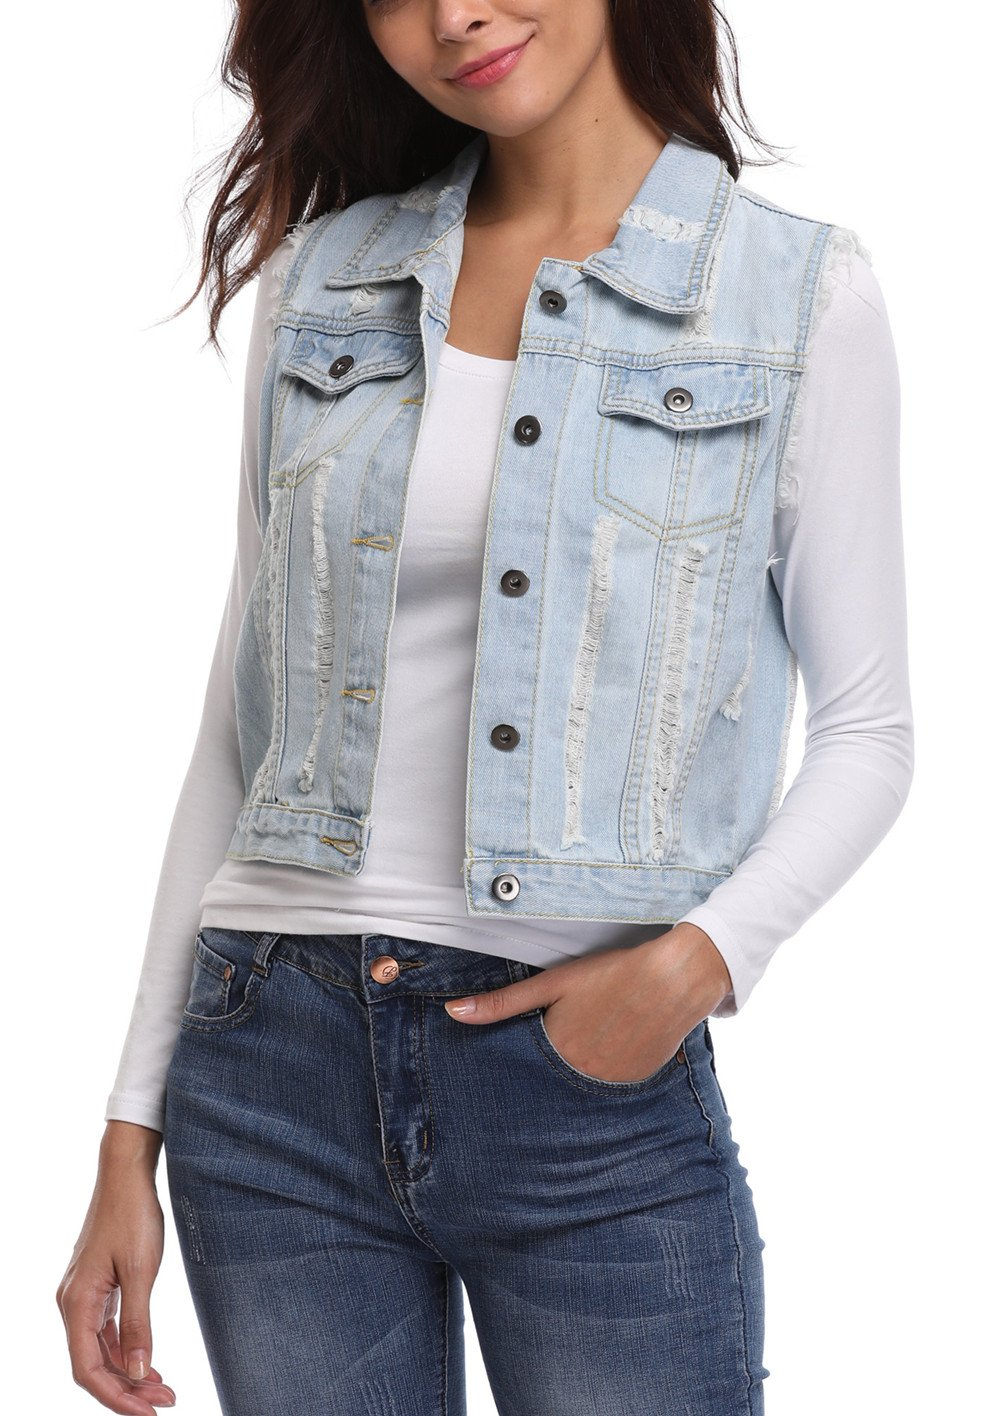 MISS MOLY Women's Frayed Washed Sleeveless Turn Down Collar Buttoned w 2 Chest Flap Pockets